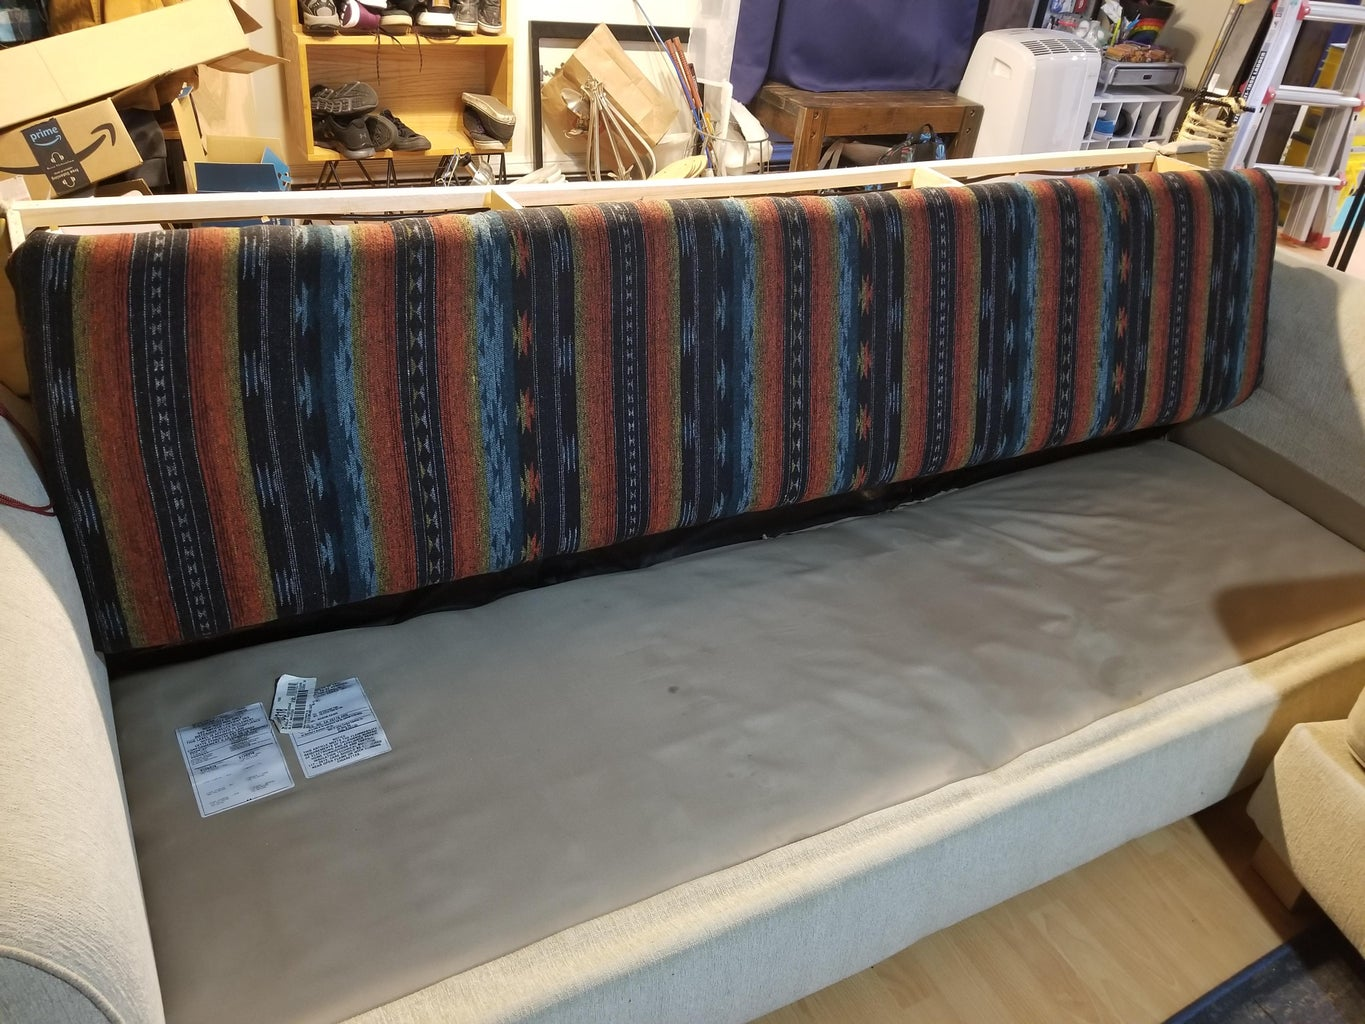 Upholstering the Cushion